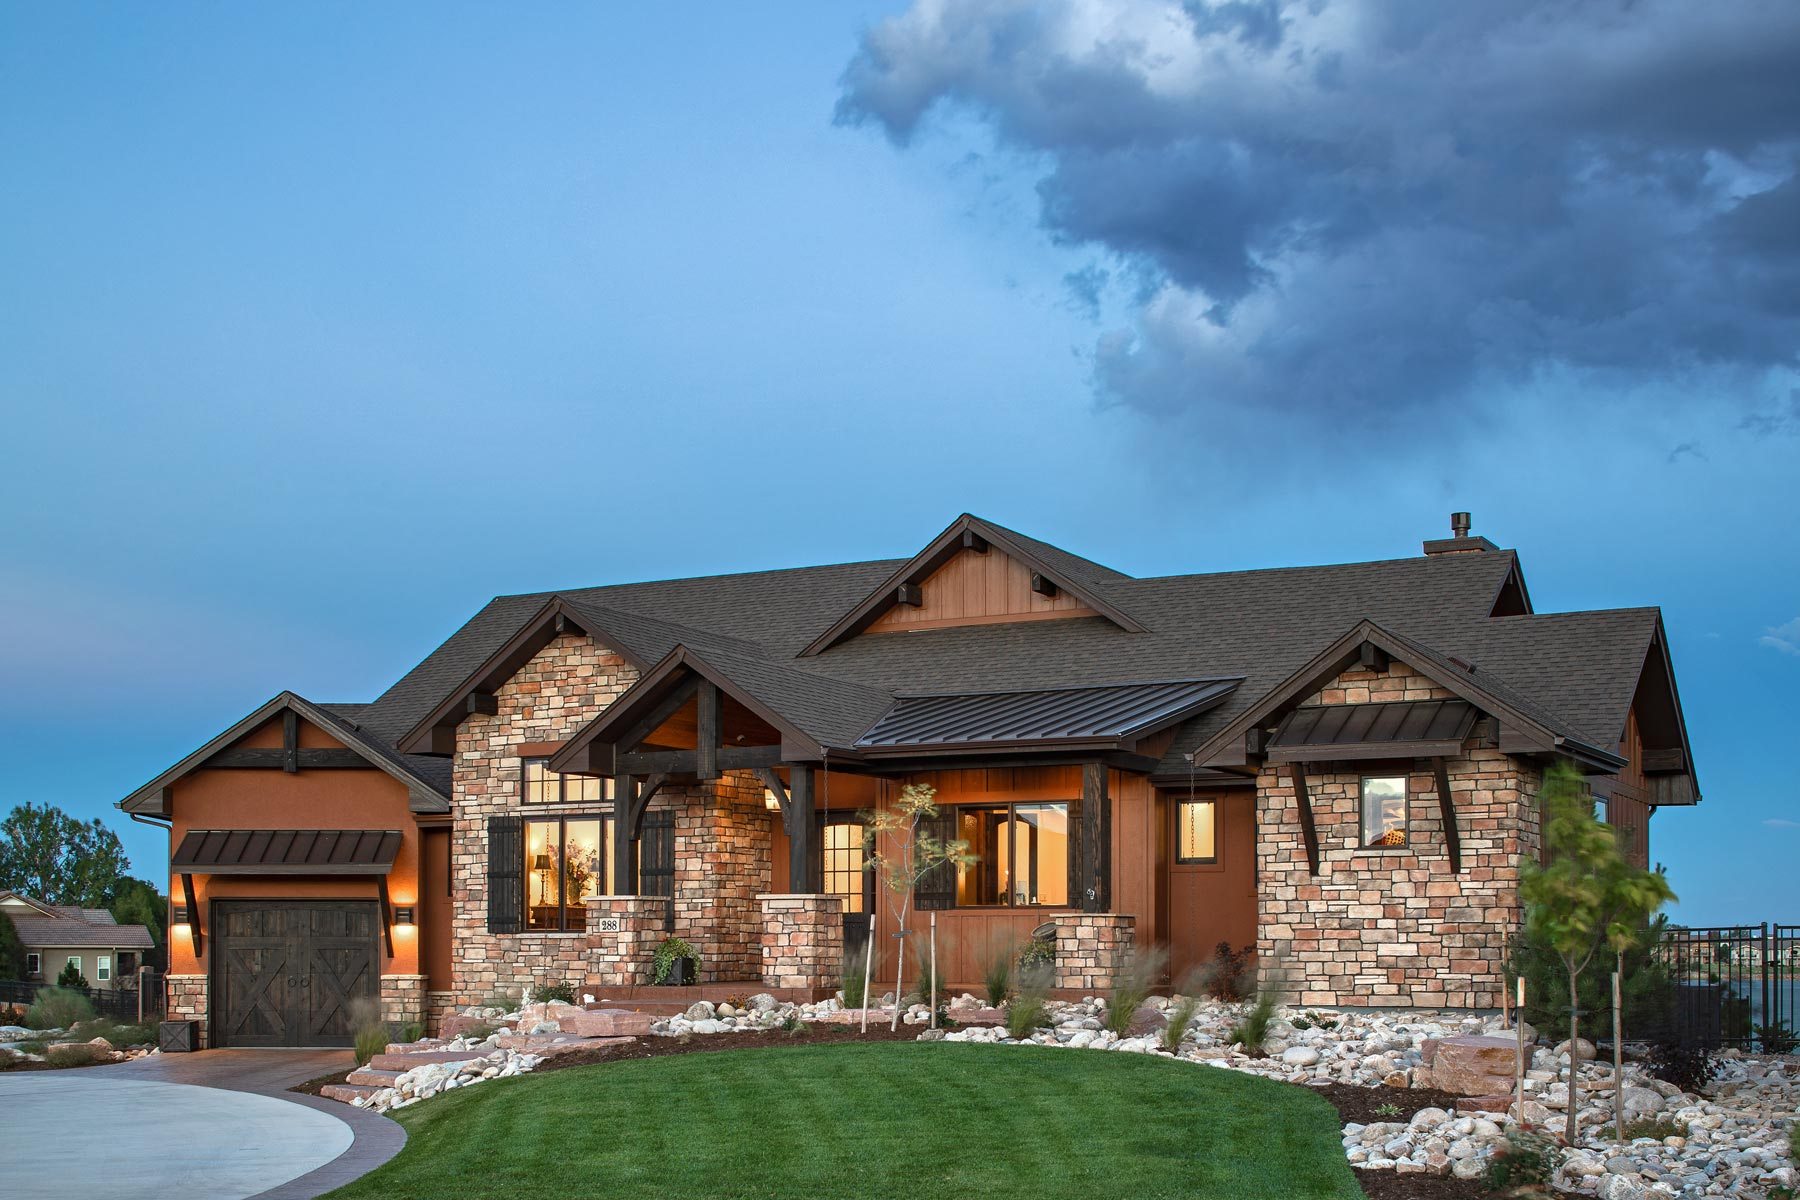 Rentfrow Design - Residential Architecture Photography - Loveland, Colorado